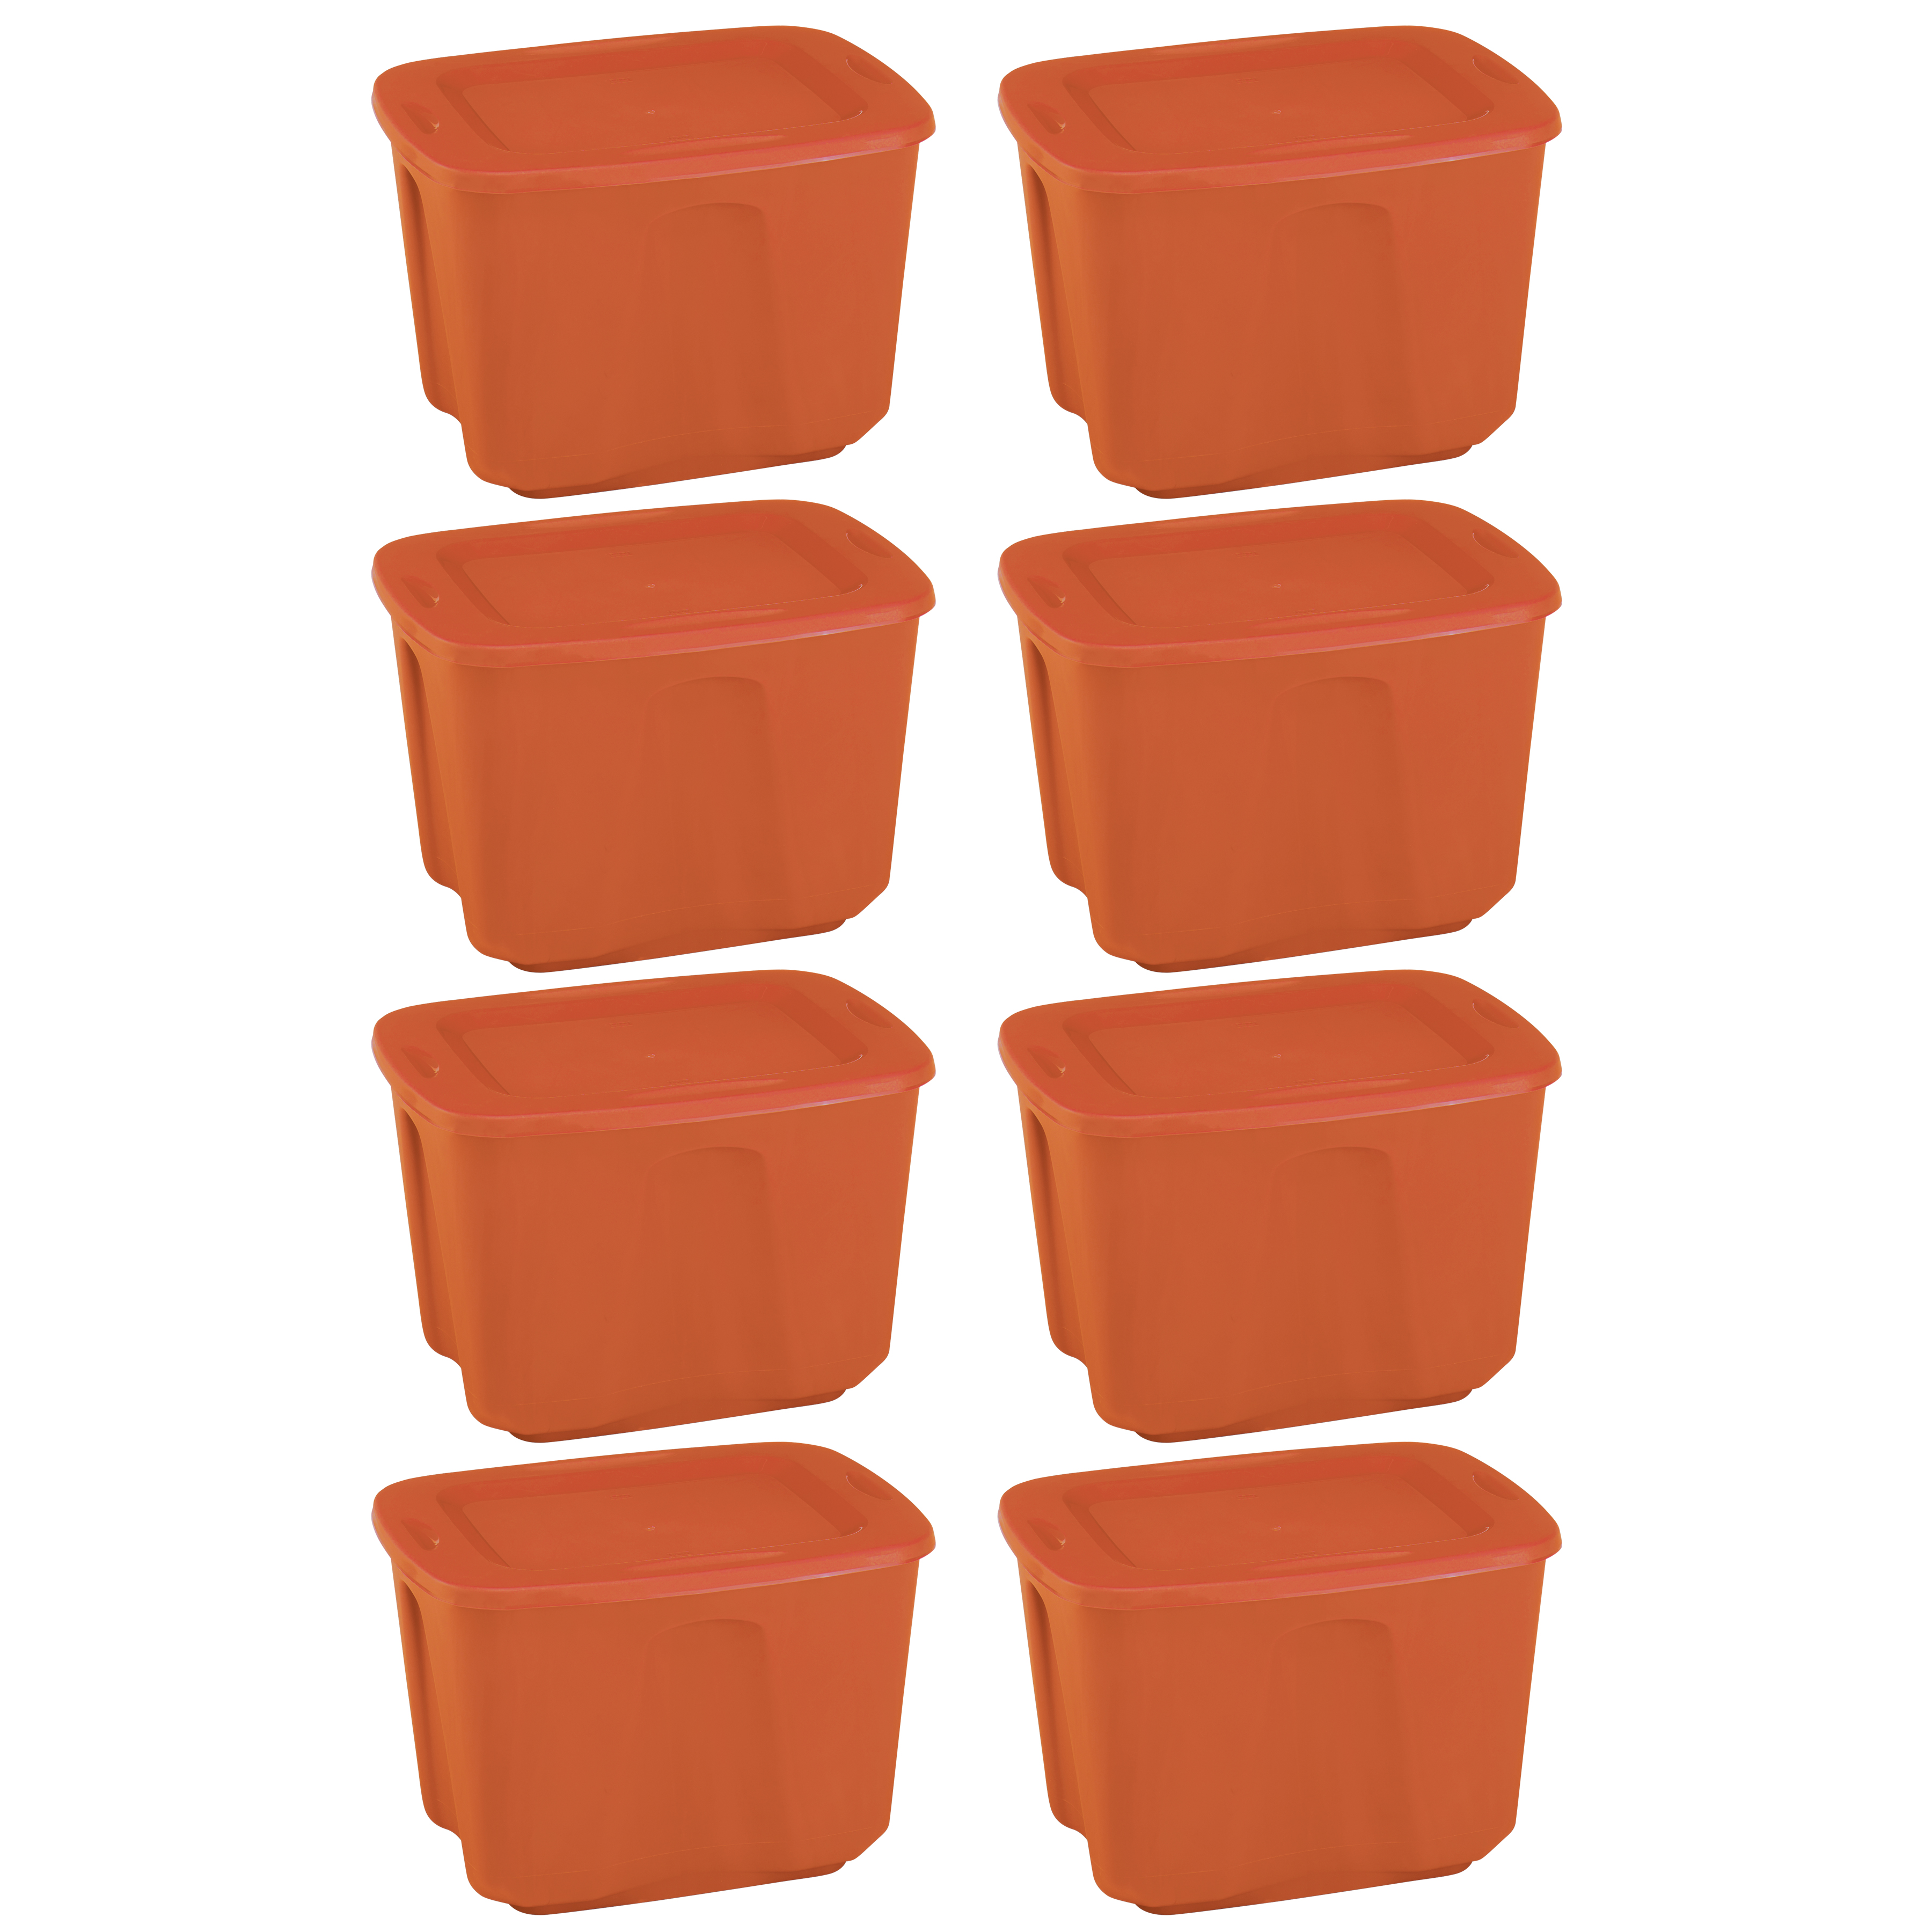 Mainstays 18 gal Storage Totes, Set of 8, Multiple Colors Available